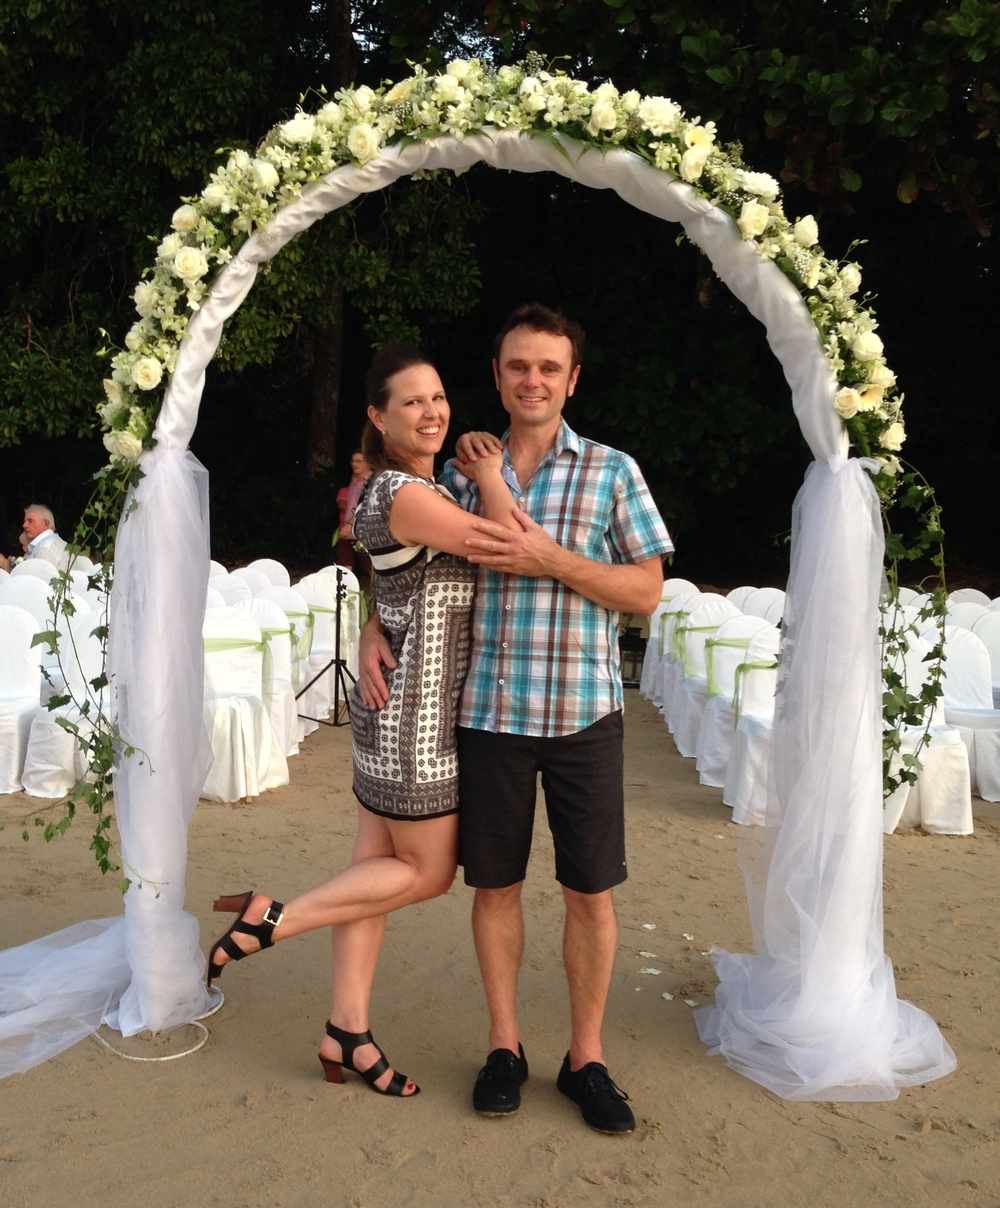 That time we hijacked the wedding arch...